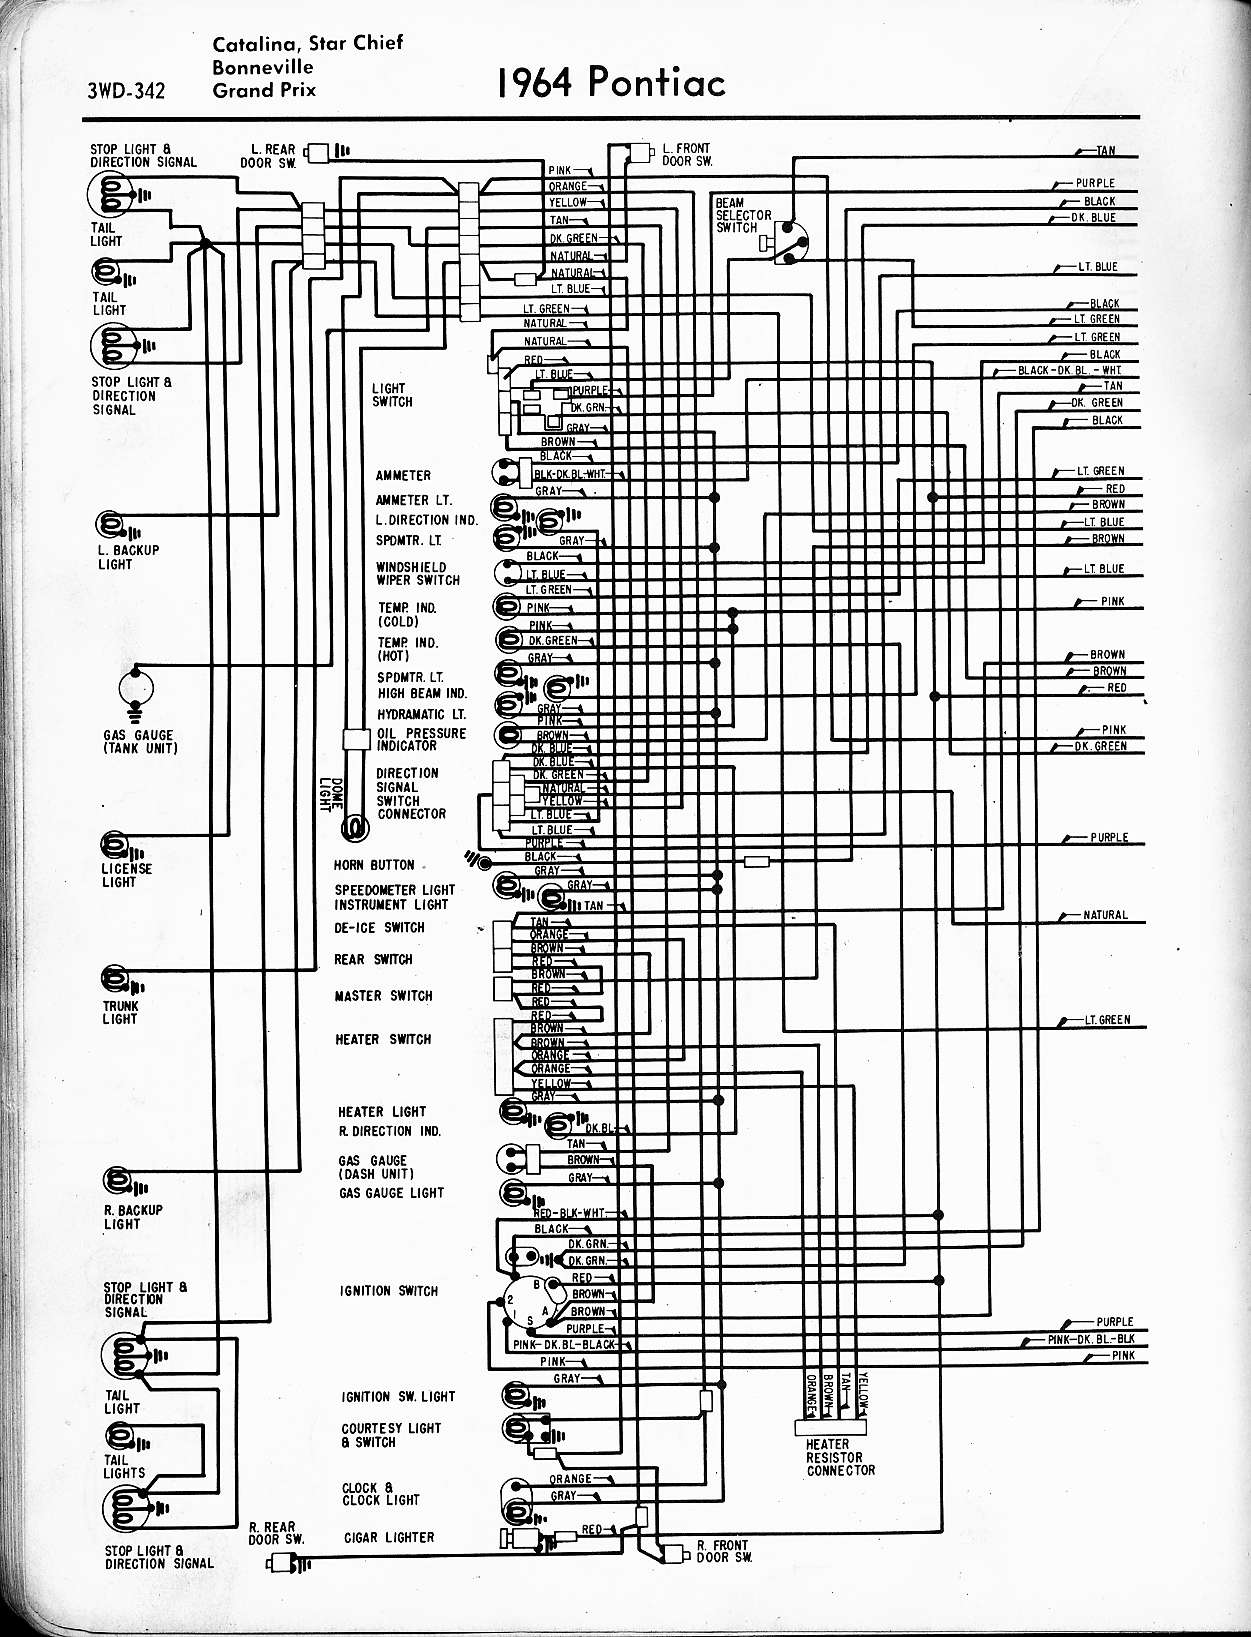 Modern Gmdlbp Wiring Diagram Photos - Best Images for wiring diagram ...